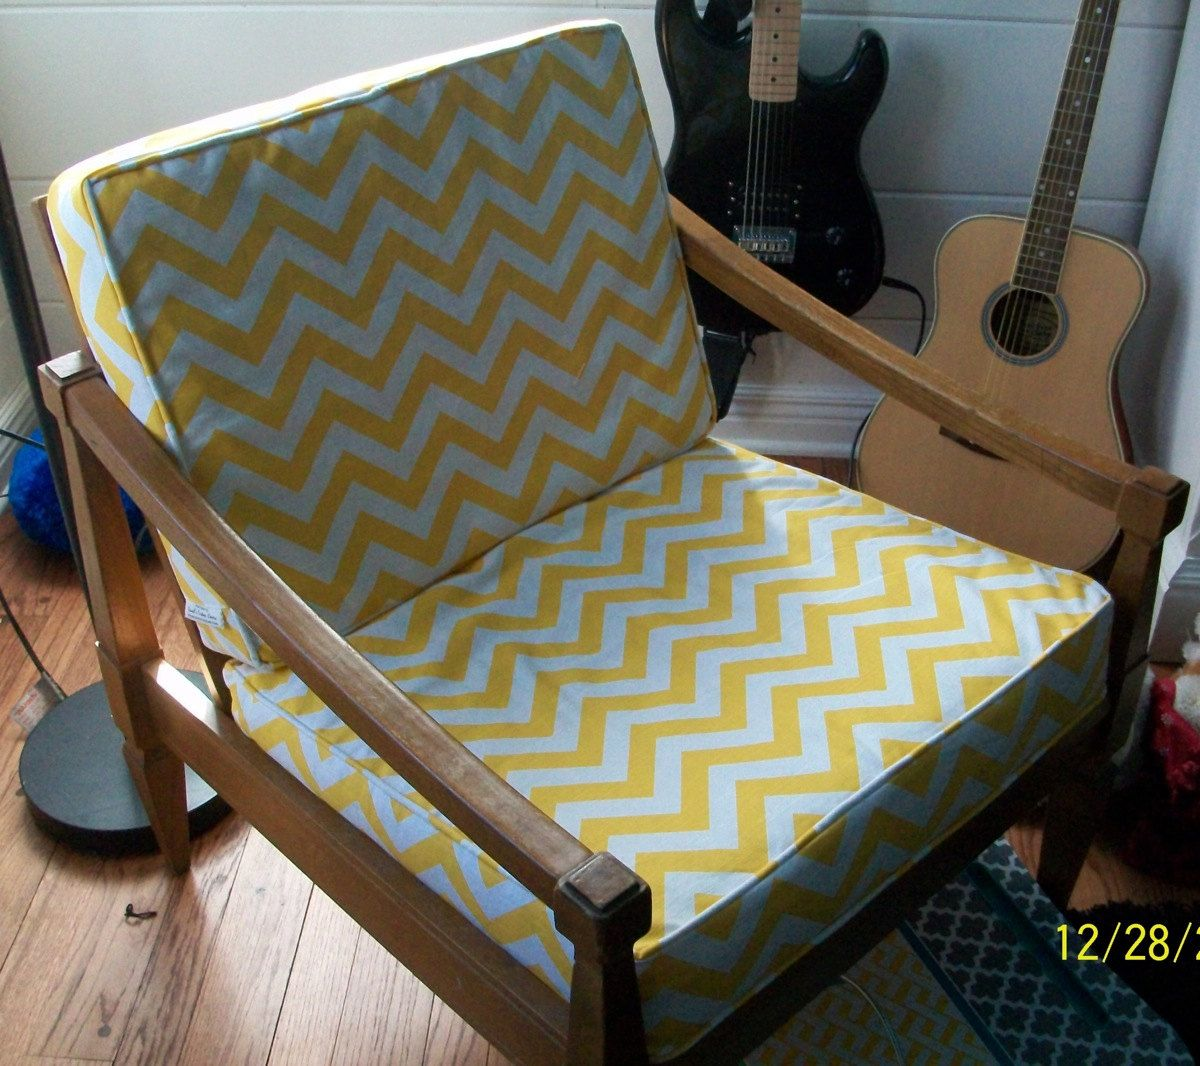 Merveilleux Custom Made Chair Cushion Covers By CarolsCustomCovers On Etsy, $50.00